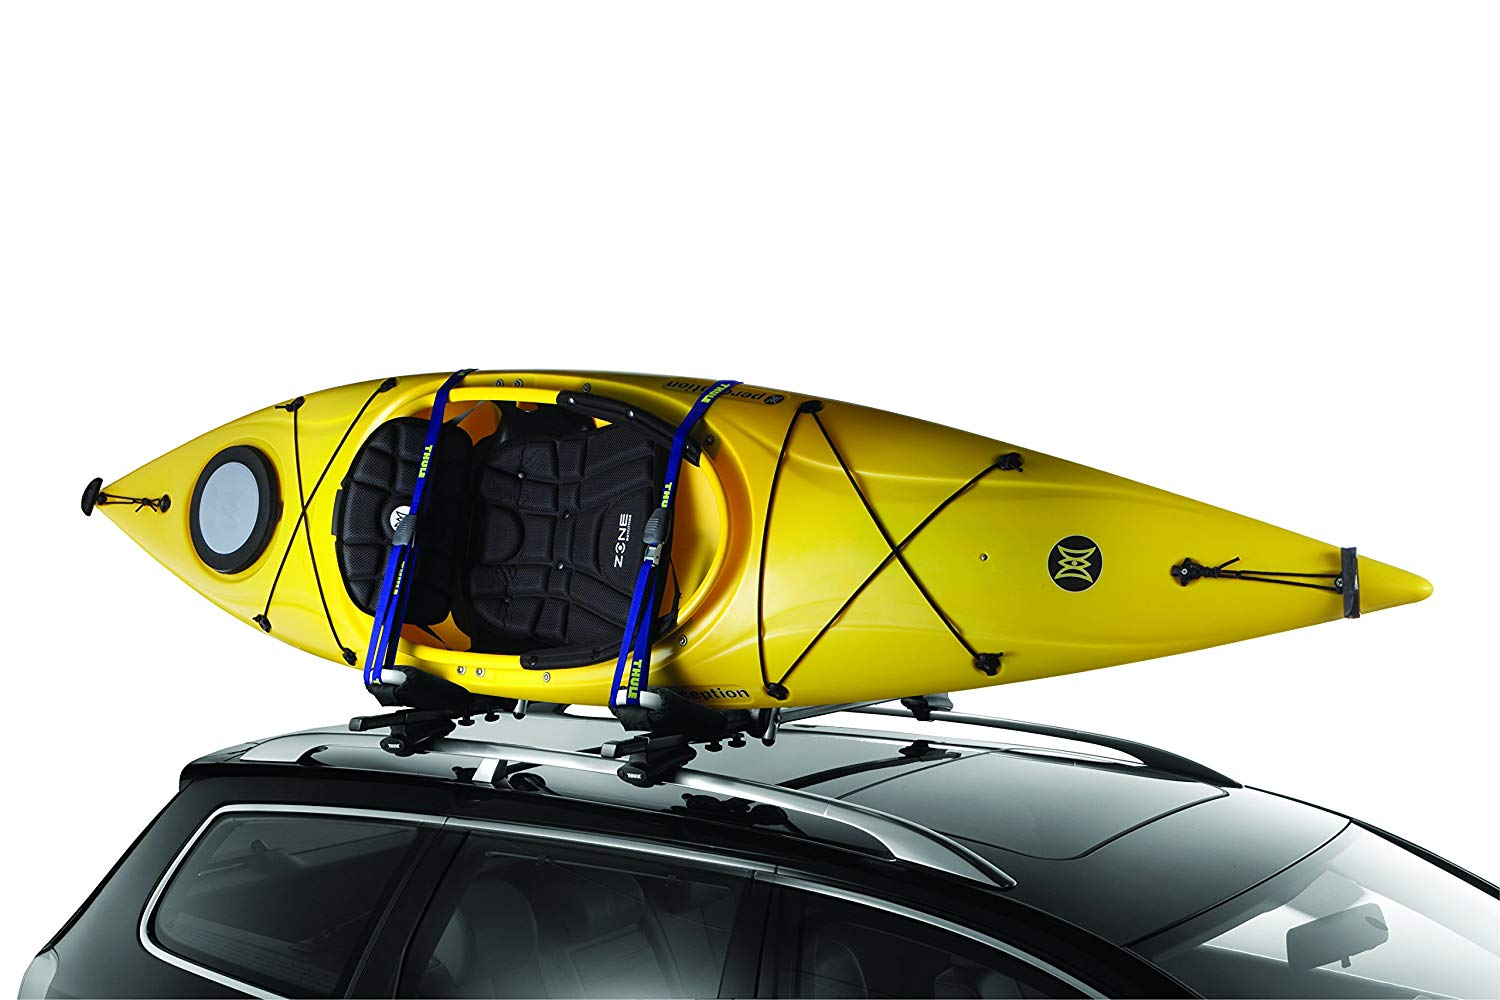 Thule Hull-a-Port Pro Rooftop Kayak Rack